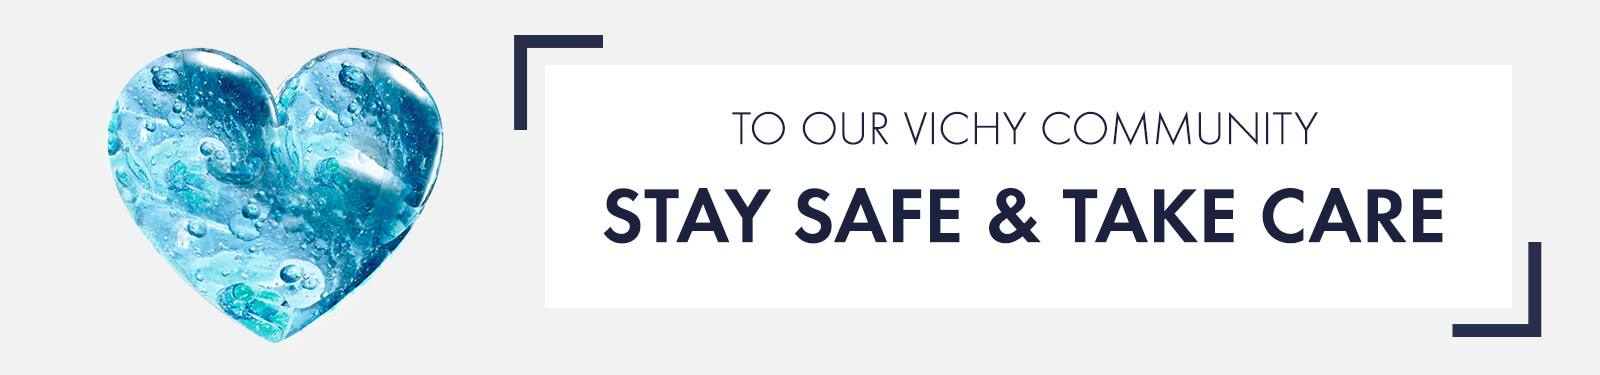 Vichy community - stay safe and take care